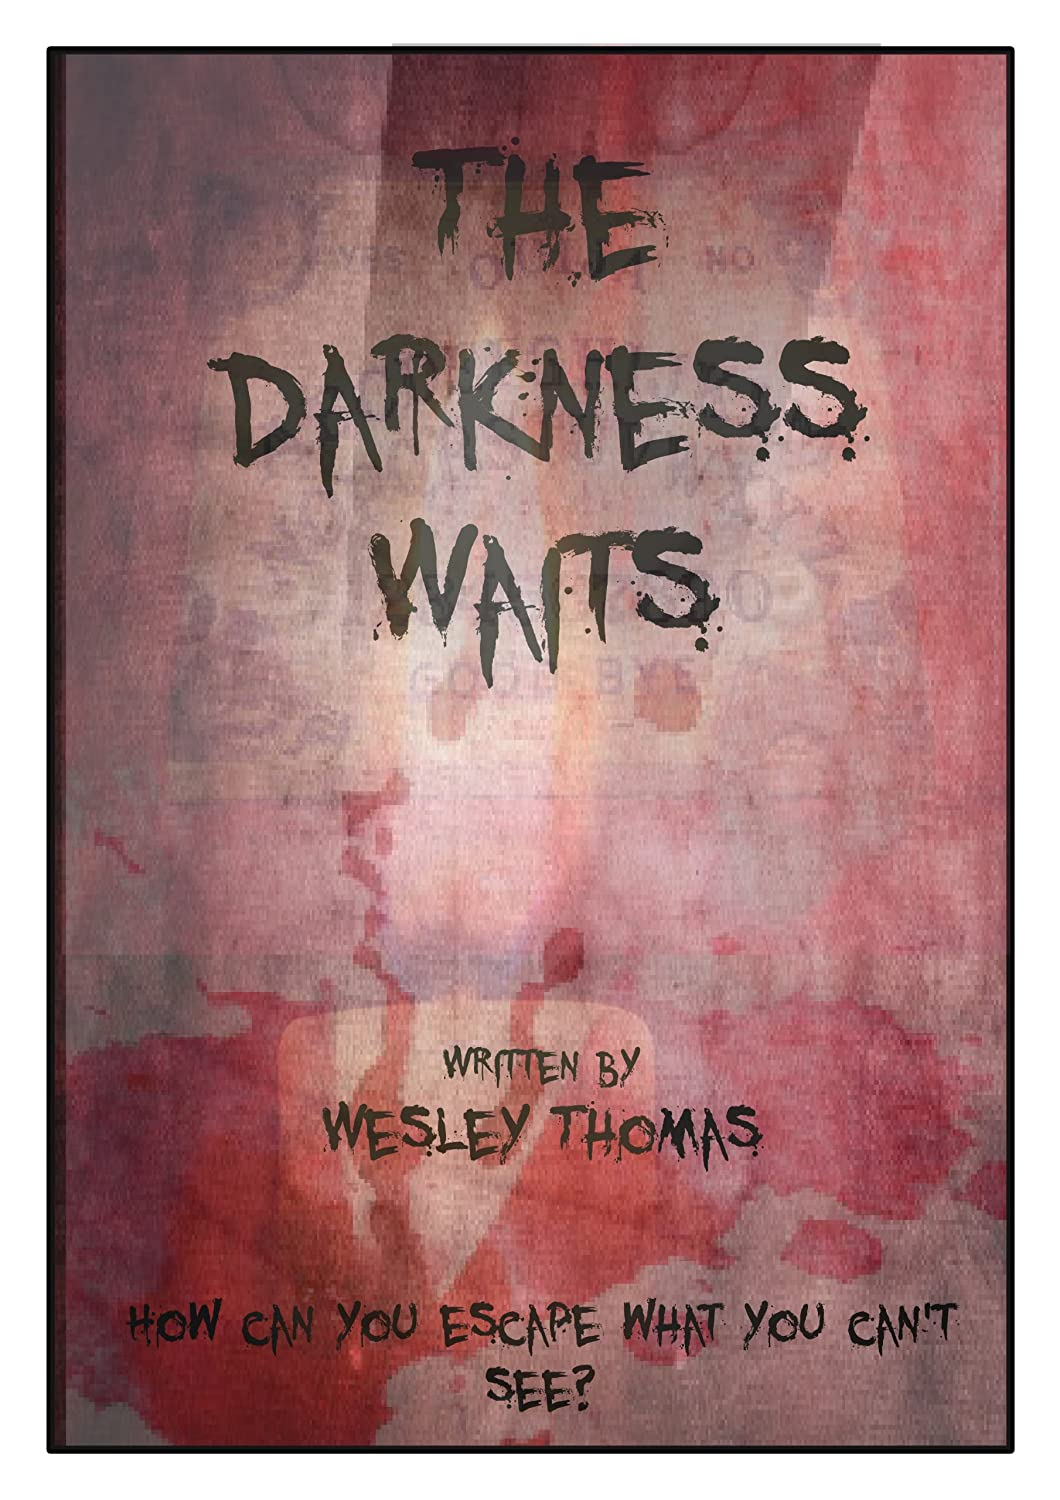 THE-DARKNESS-WAITS-ABSOLUTE-FINAL-VERSION-CANDLES-OUIJJA-BOARD-JPG